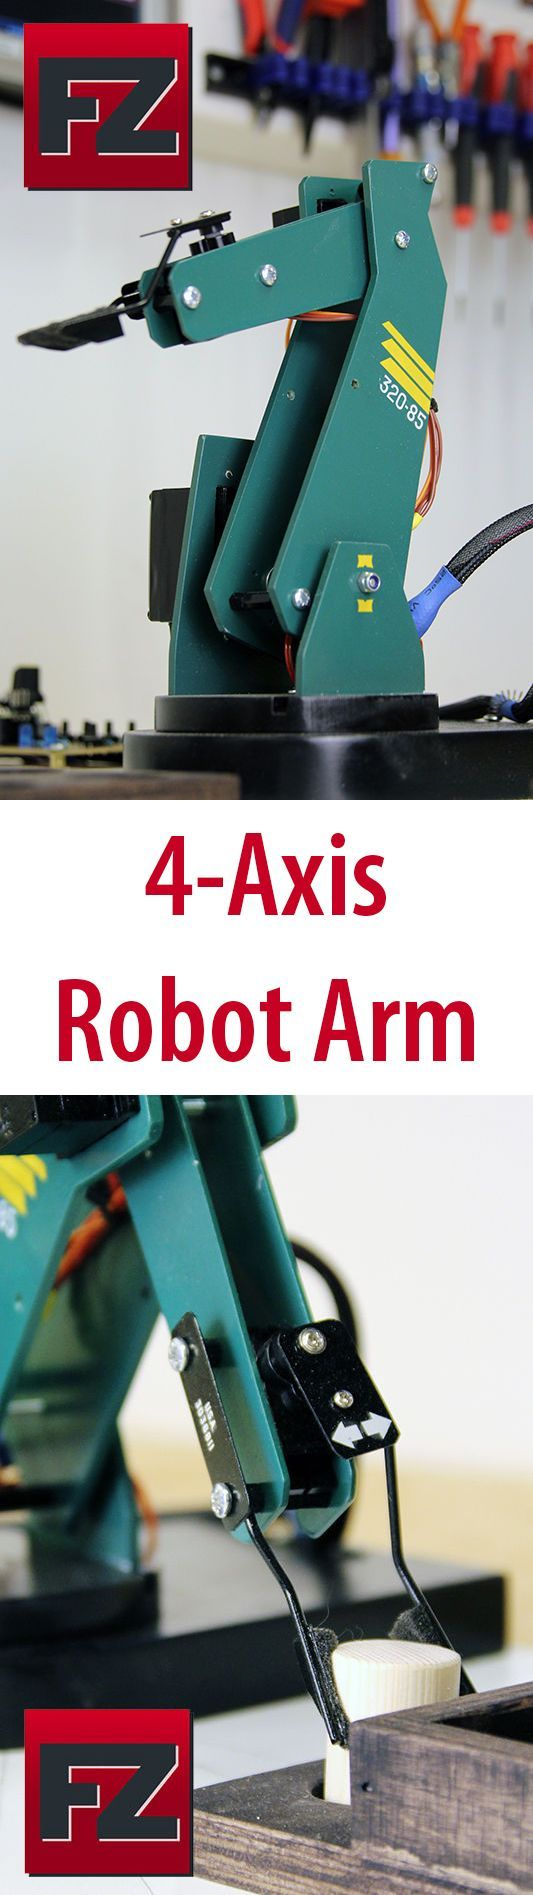 13 Best Robot Inspiration Images On Pinterest Robotics Robots And Squishy Circuits Standard Kit Robotshop I Made This Project Mainly To Learn How Use Servos With Arduino 3dprintingdiy